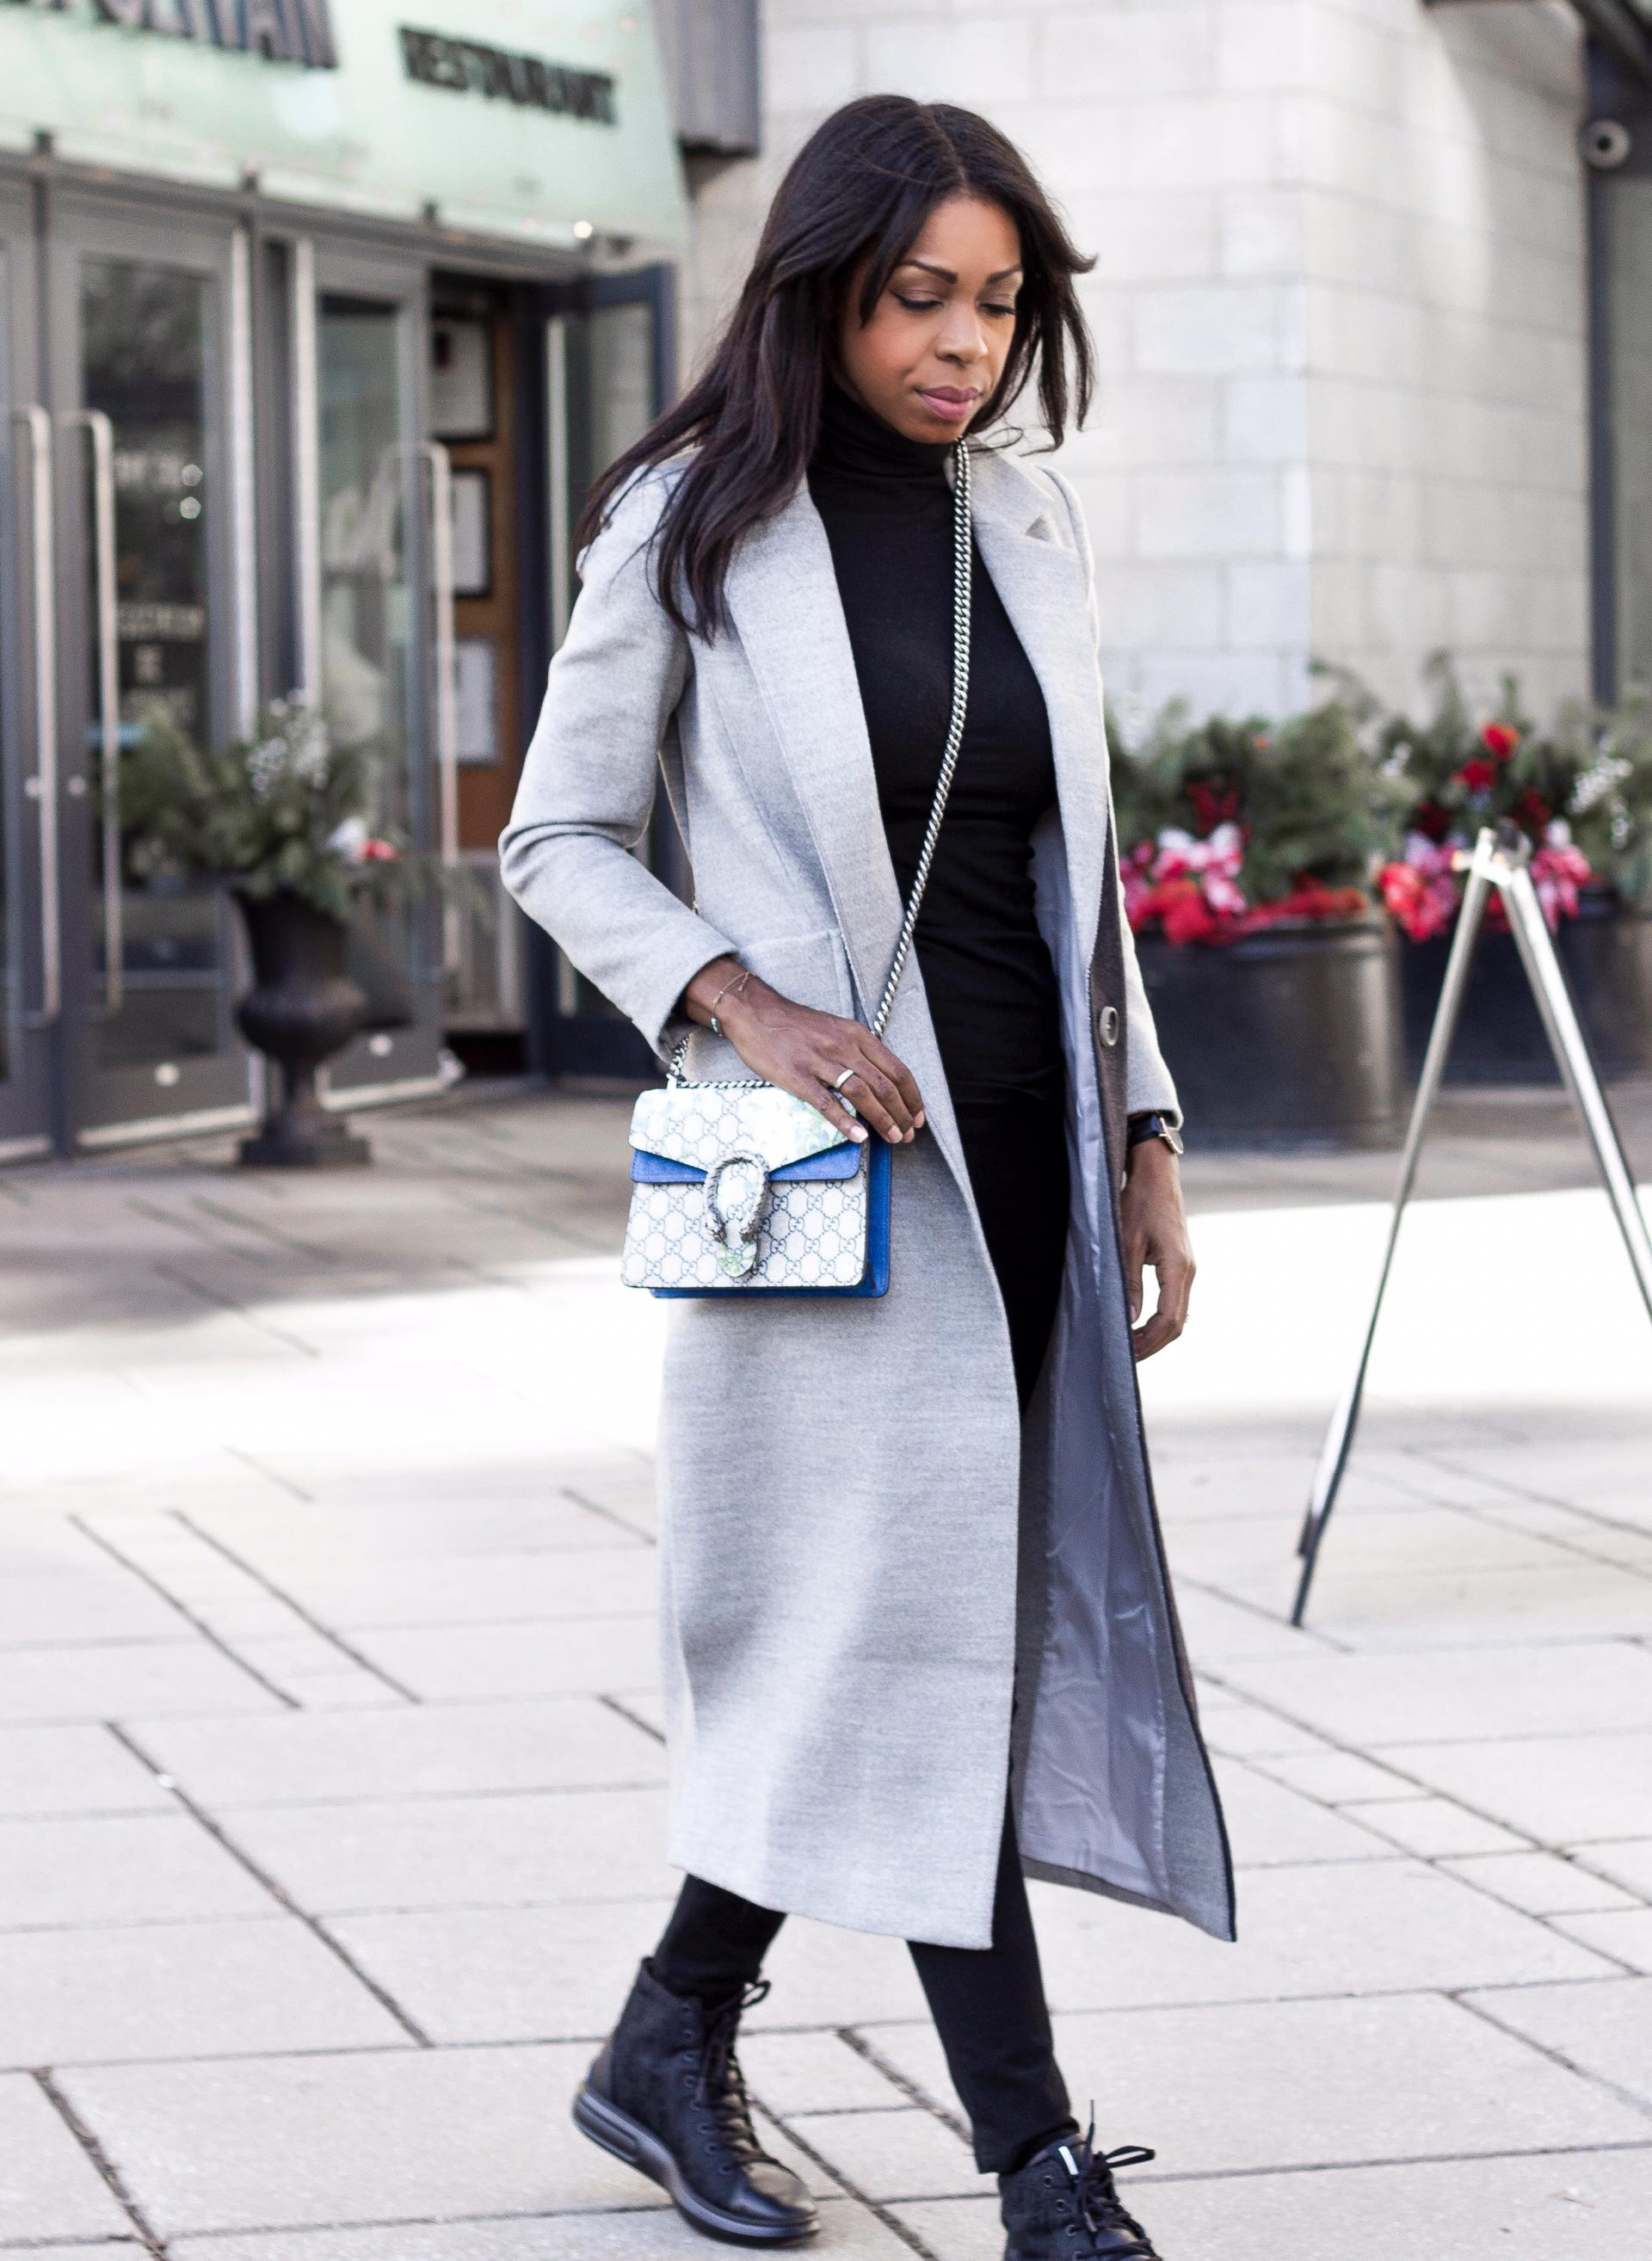 How To Look Cute And Stay Warm In The Winter